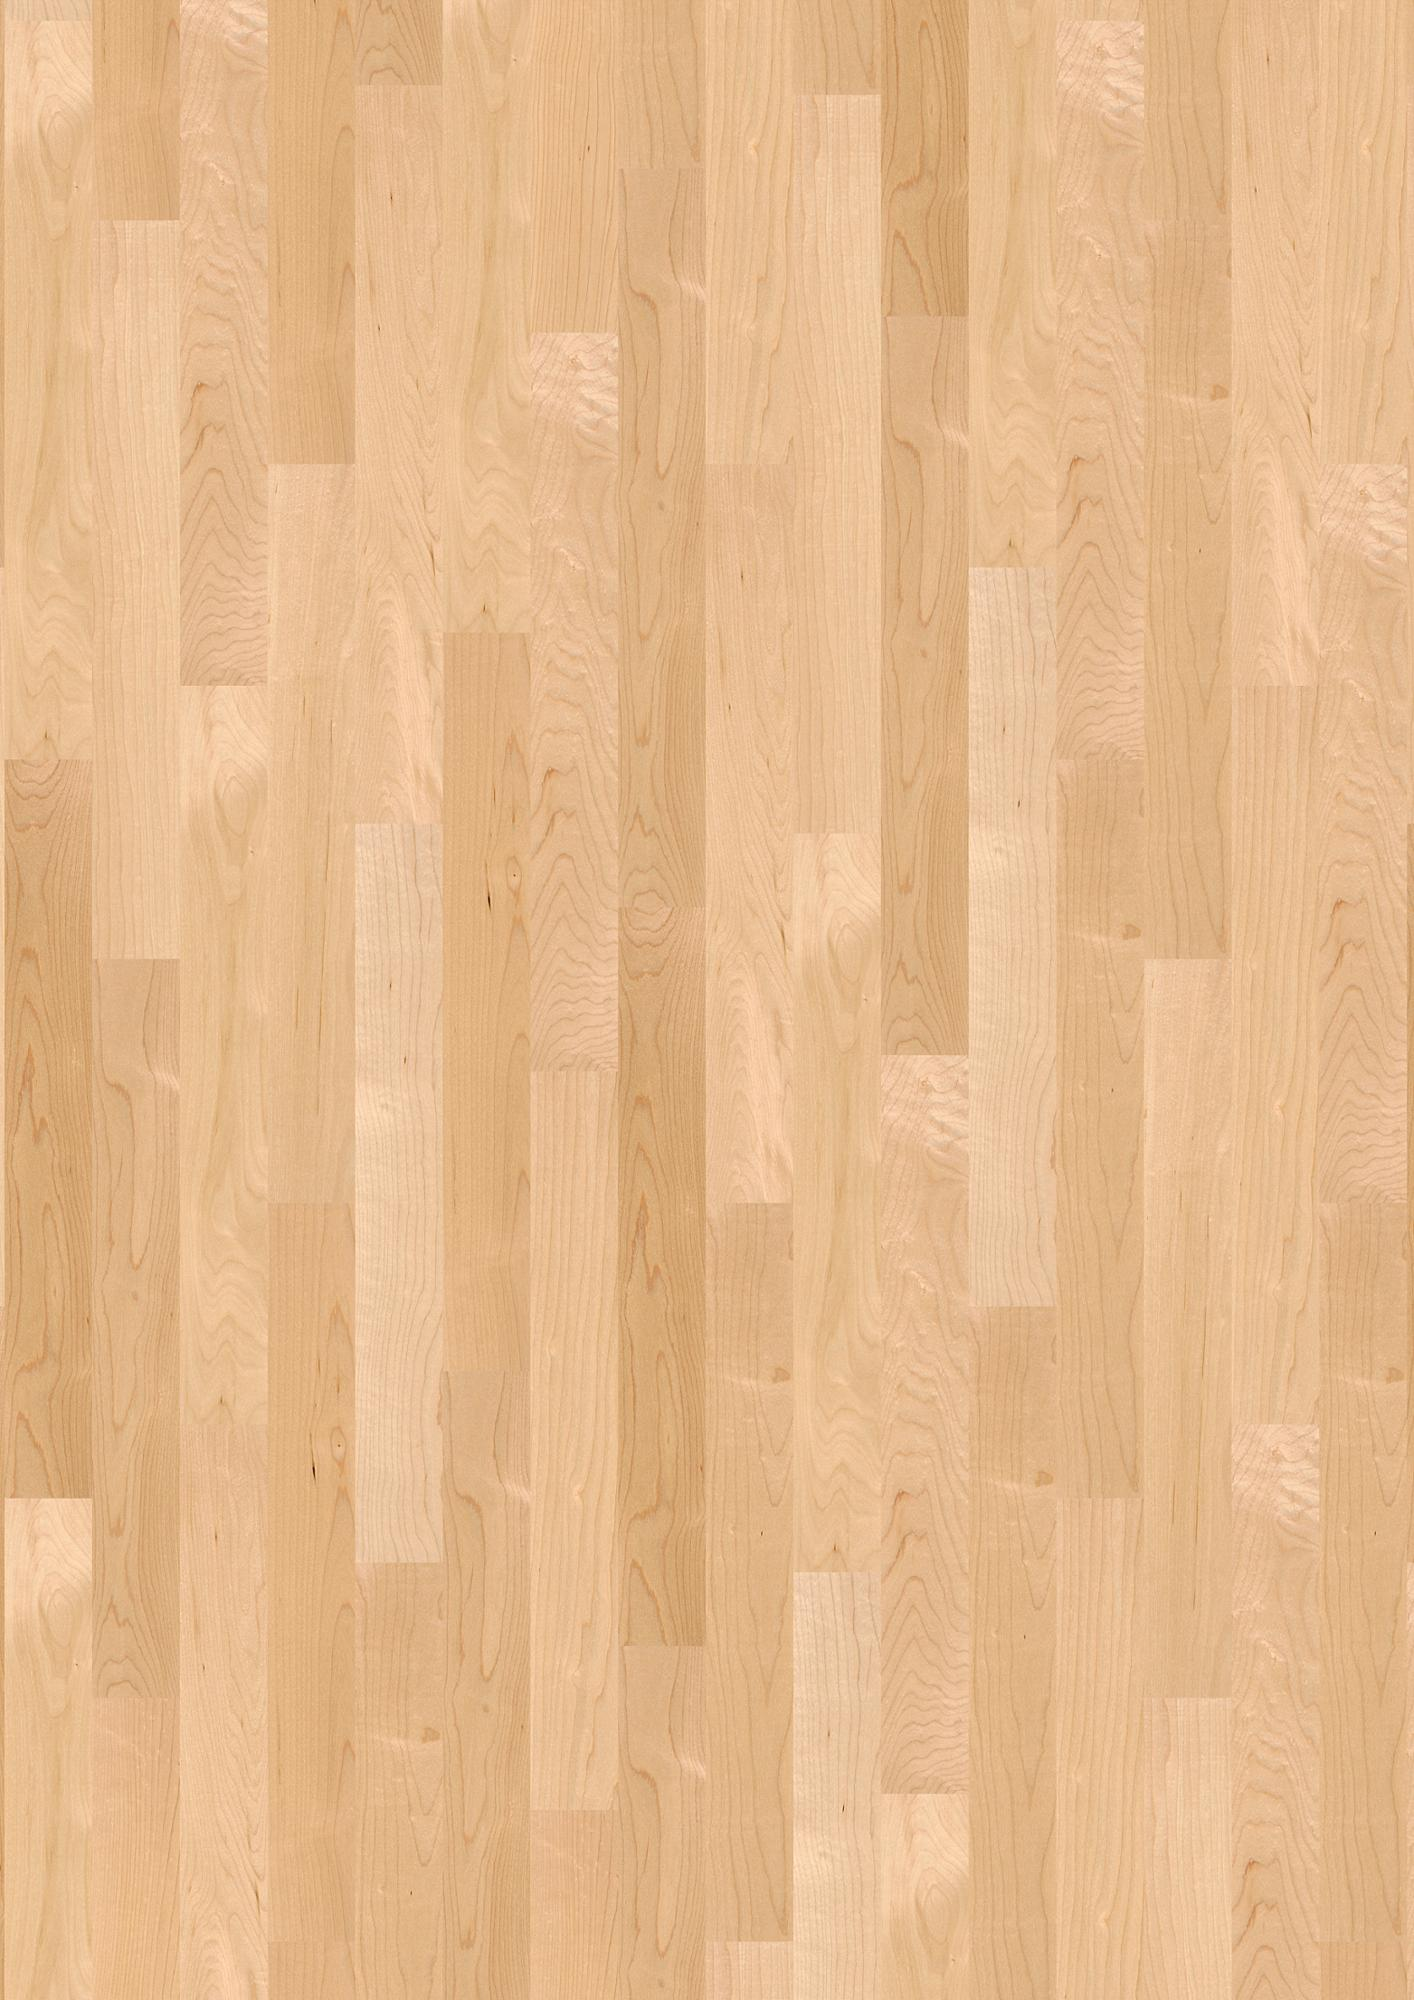 Maple Canadian Nature, Live Satin lacquer, Unbrushed, Square edged, Short strip Prestige, 25/64x2 3/4x23 15/64inch